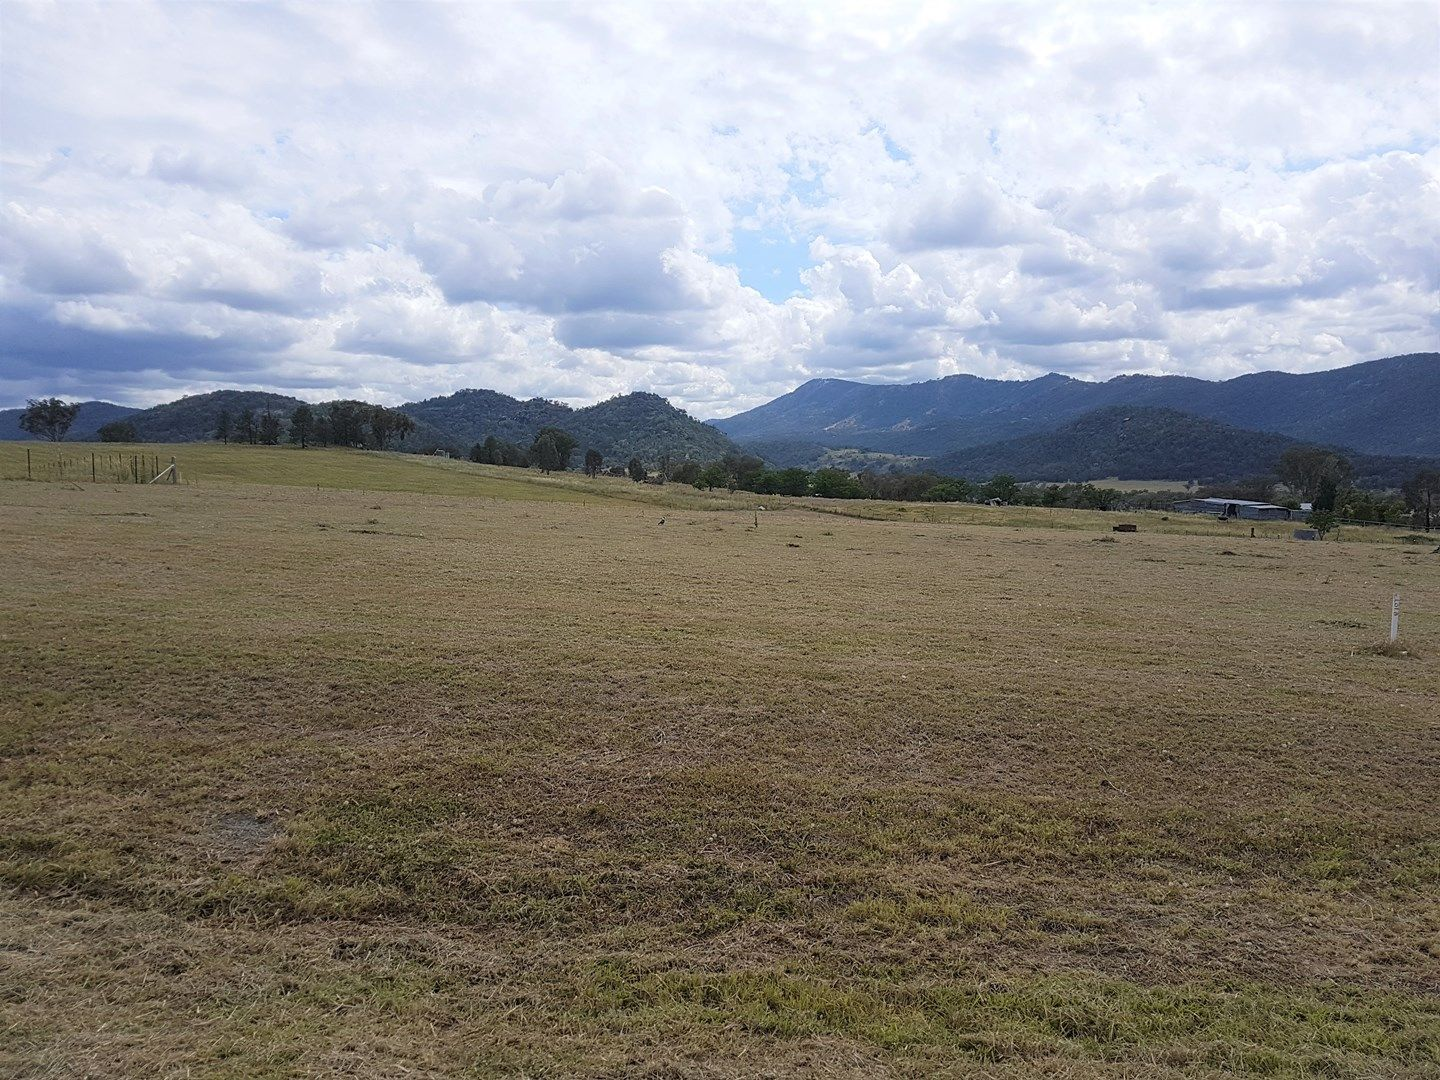 LOT 8 MOONBI HEIGHTS, MOONBI, Kootingal NSW 2352, Image 0